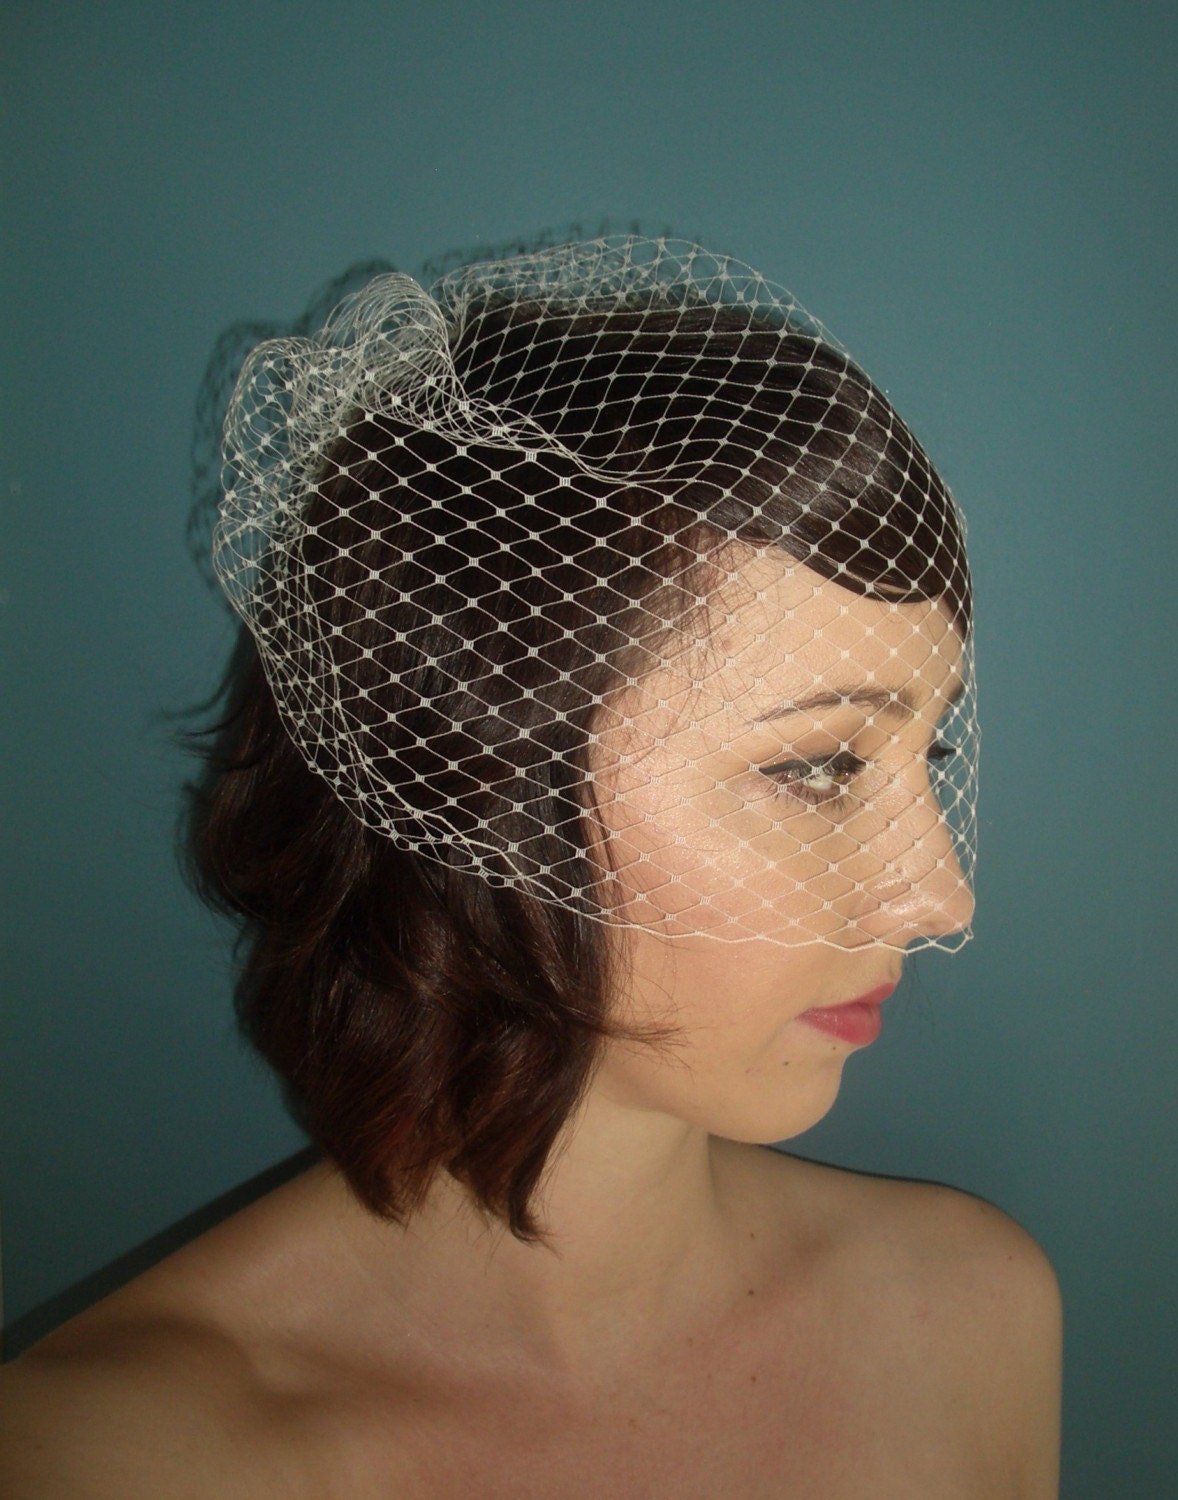 birdcage veil 14 inch by TessaKim on Etsy from etsy.com